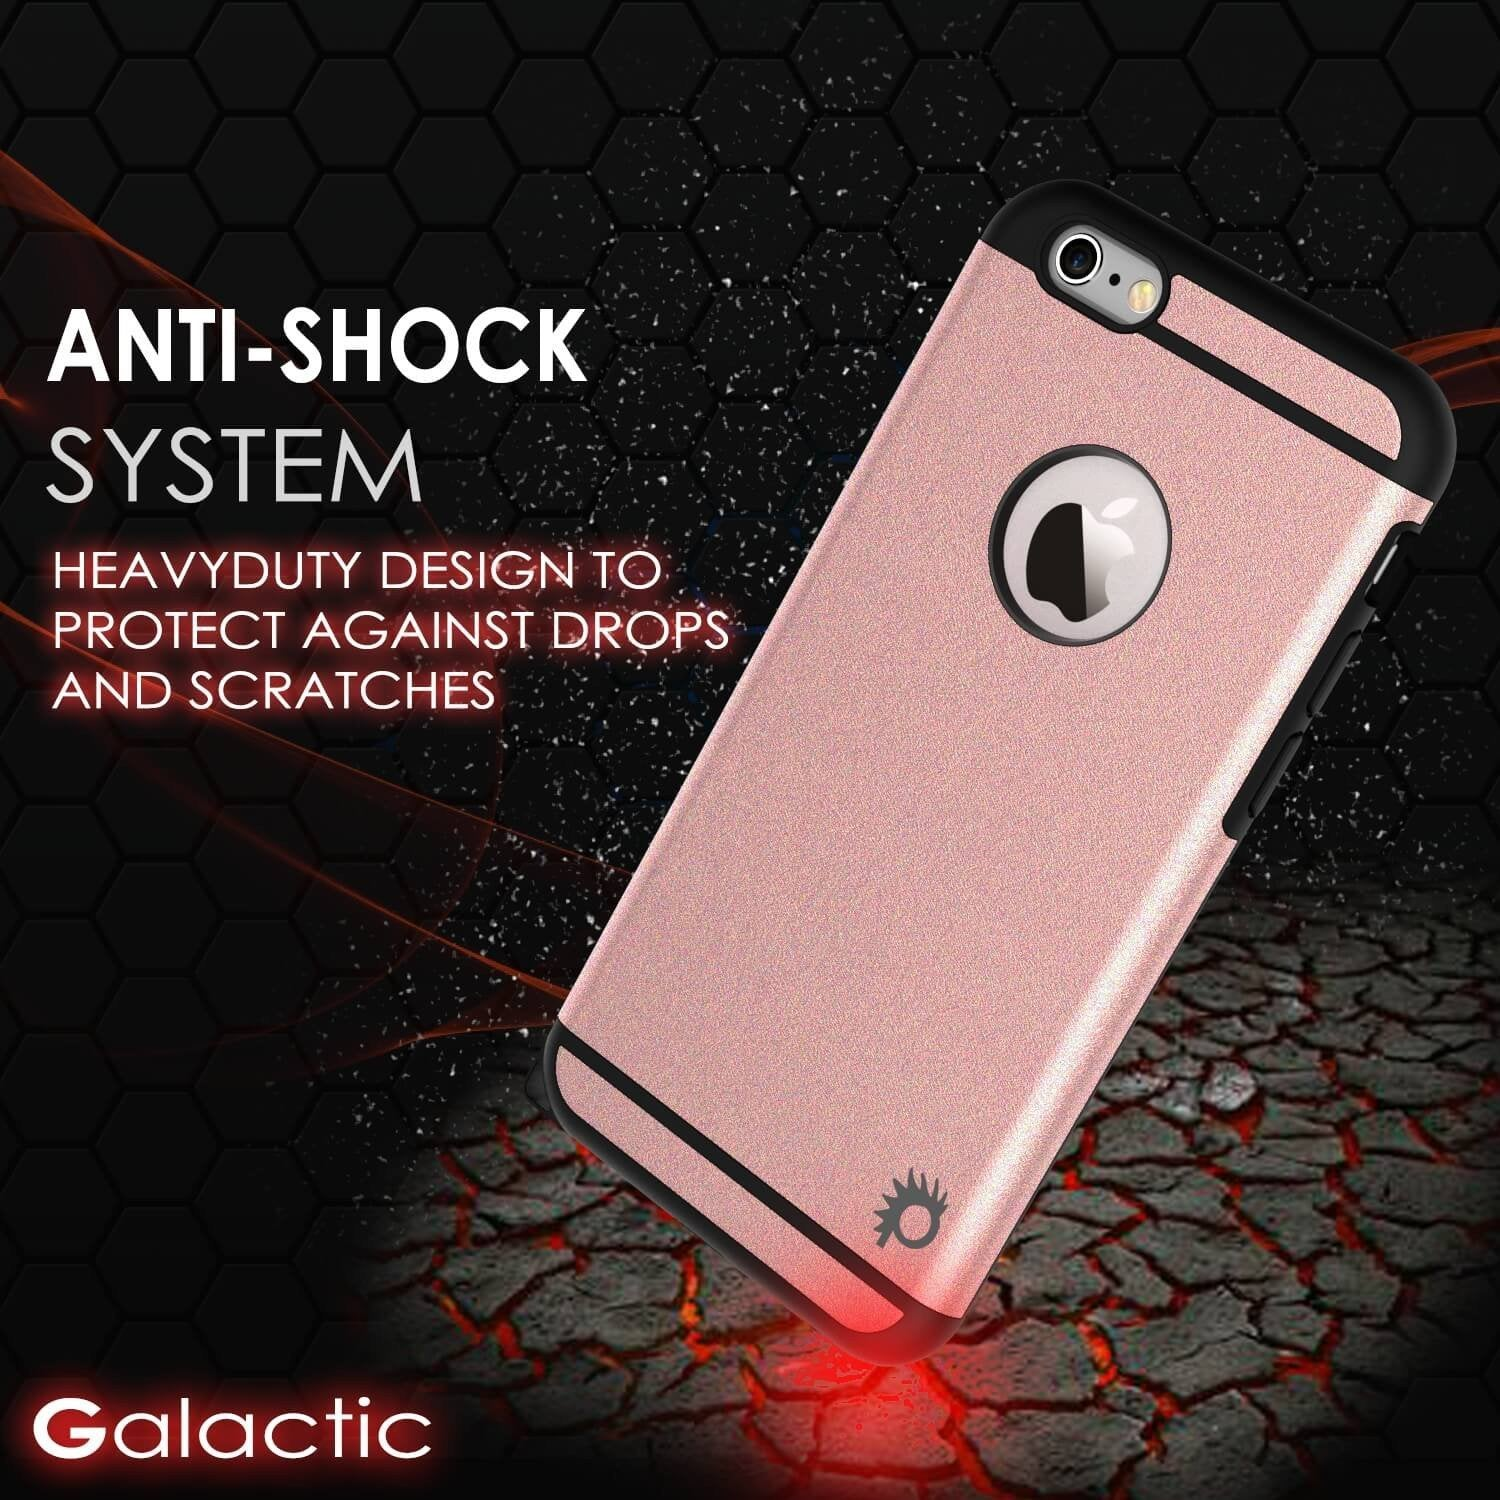 iPhone 5s/5 Case PunkCase Galactic black Series Slim w/ Tempered Glass | Lifetime Warranty - PunkCase NZ